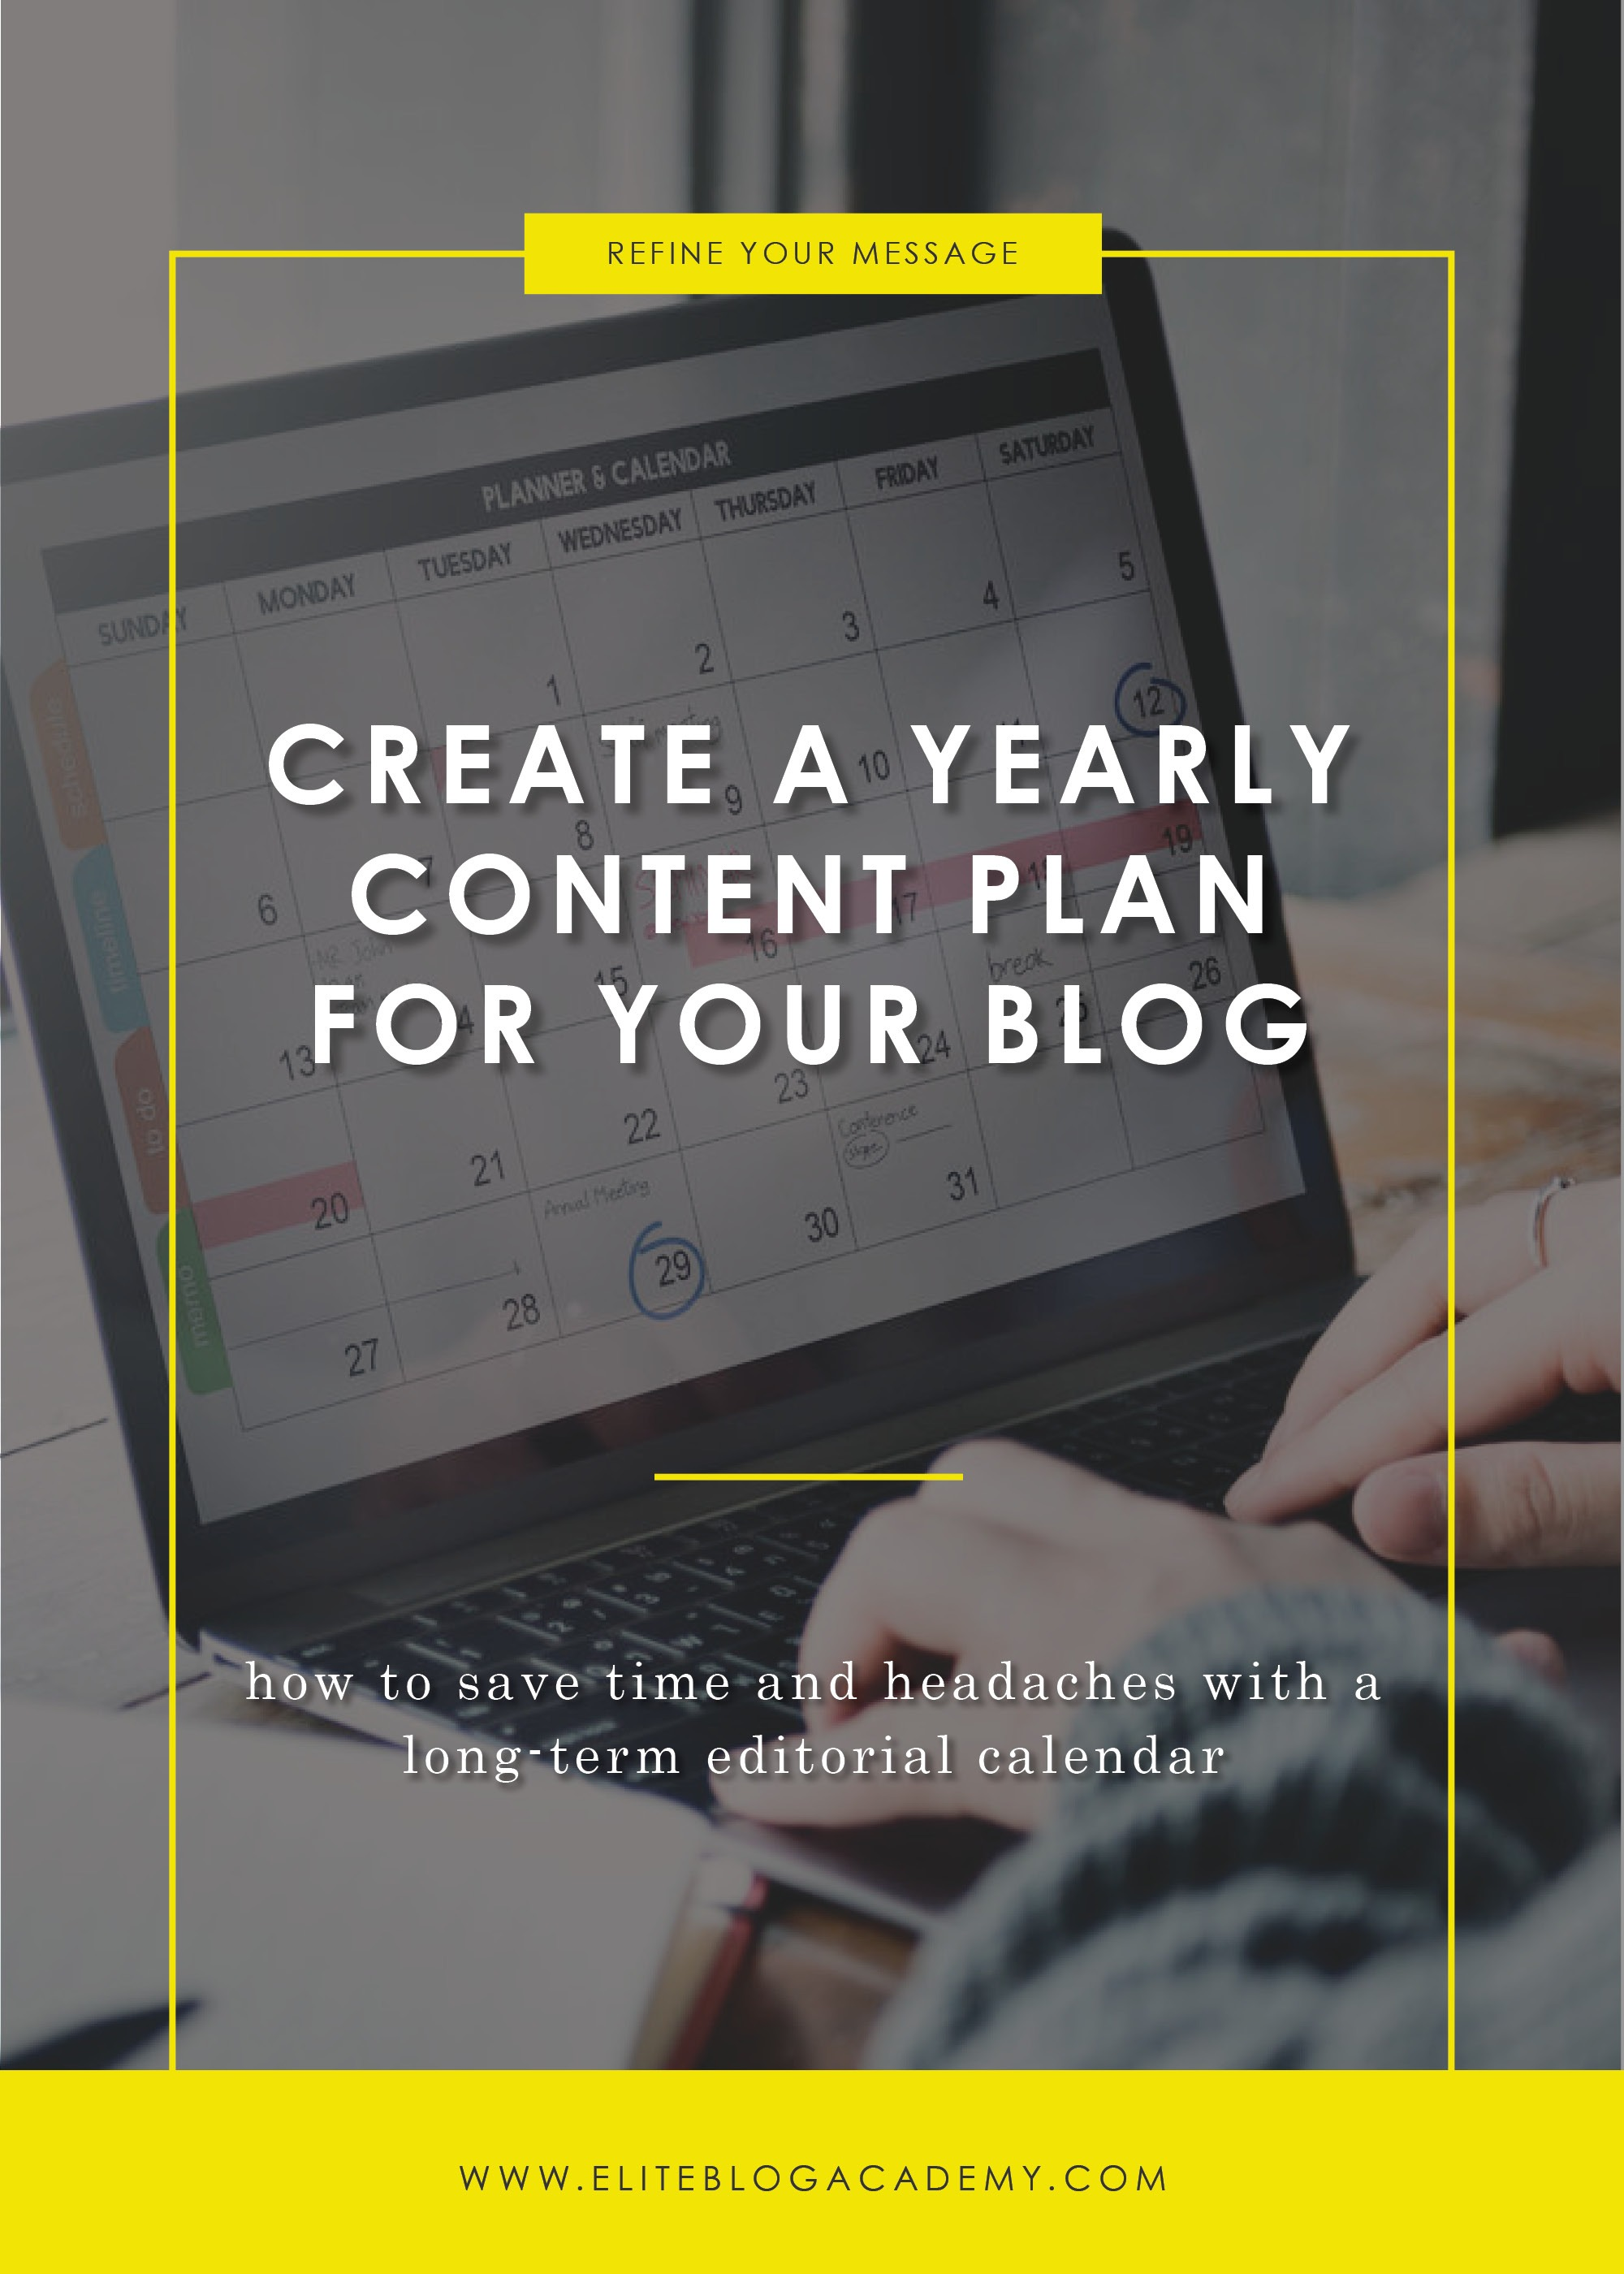 How to Create a Yearly Content Plan | Elite Blog Academy | Blogging 101 | How to Brainstorm Blog Content | Scheduling Blog Content | Creating Blog Posts | How to Make Money Blogging | Popular Blog Post Topics